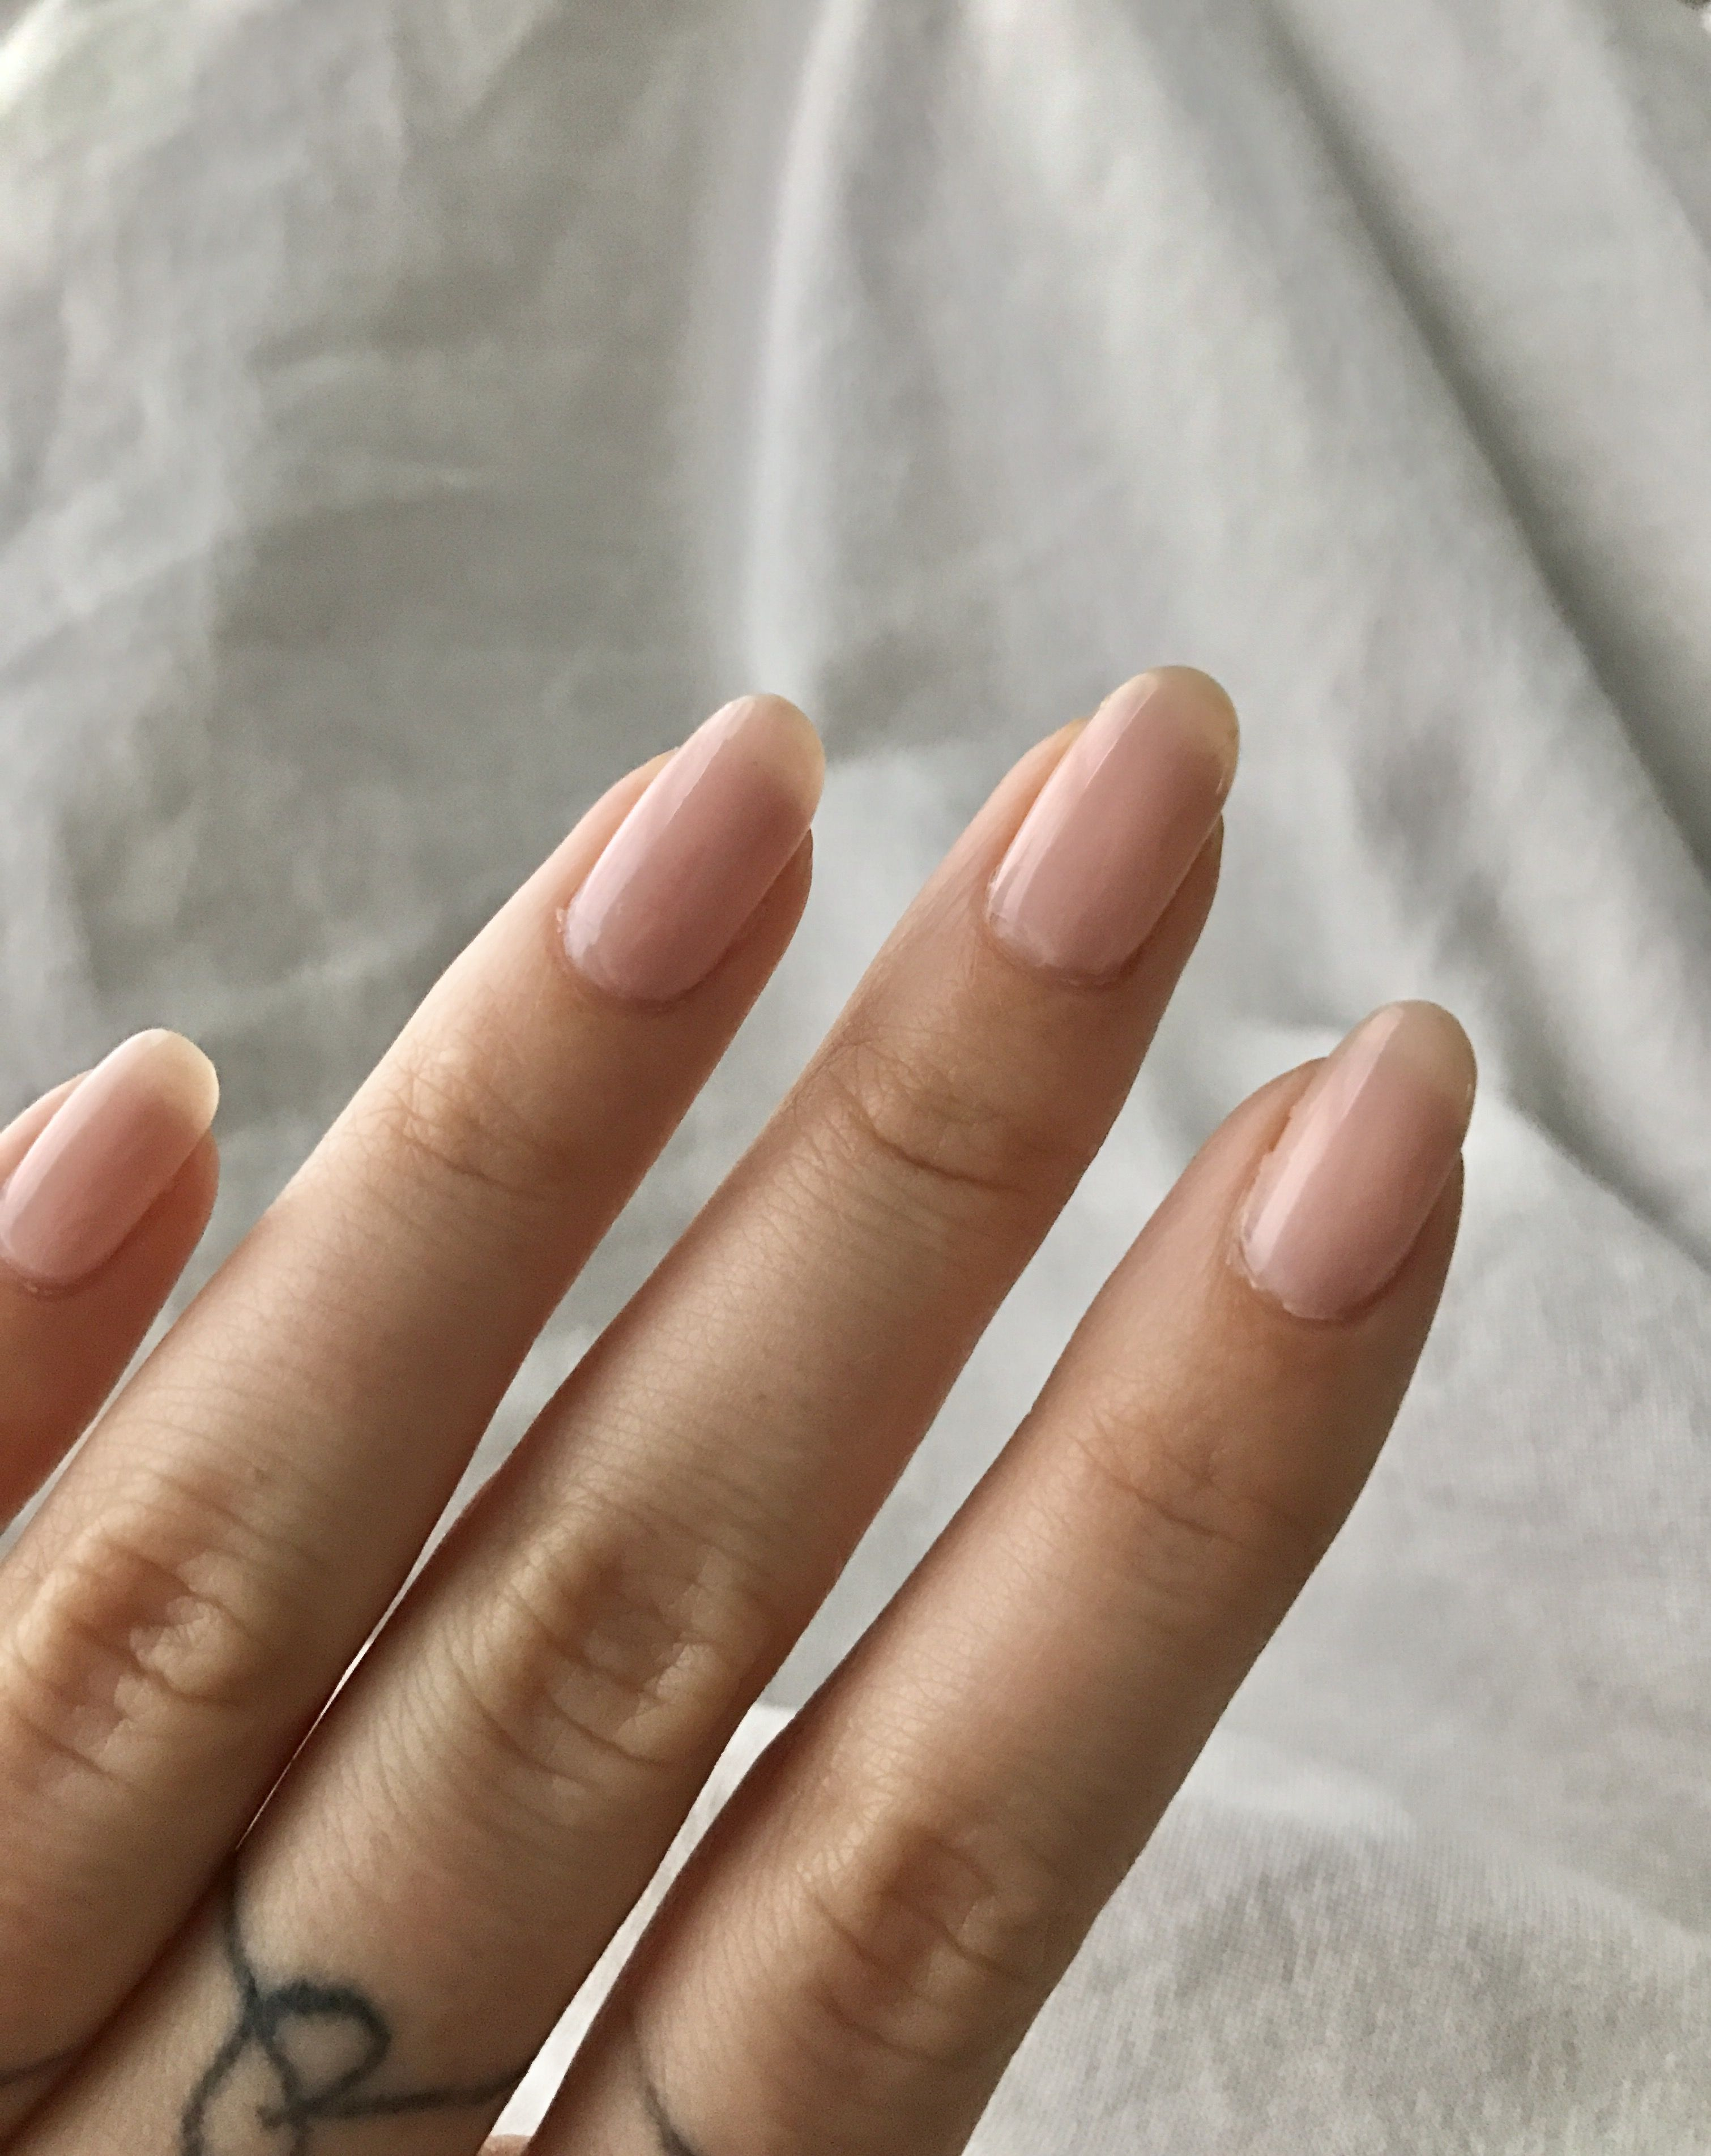 Round light pink/nude nails. OPI Nail Envy in Bubble Bath | nailed ...